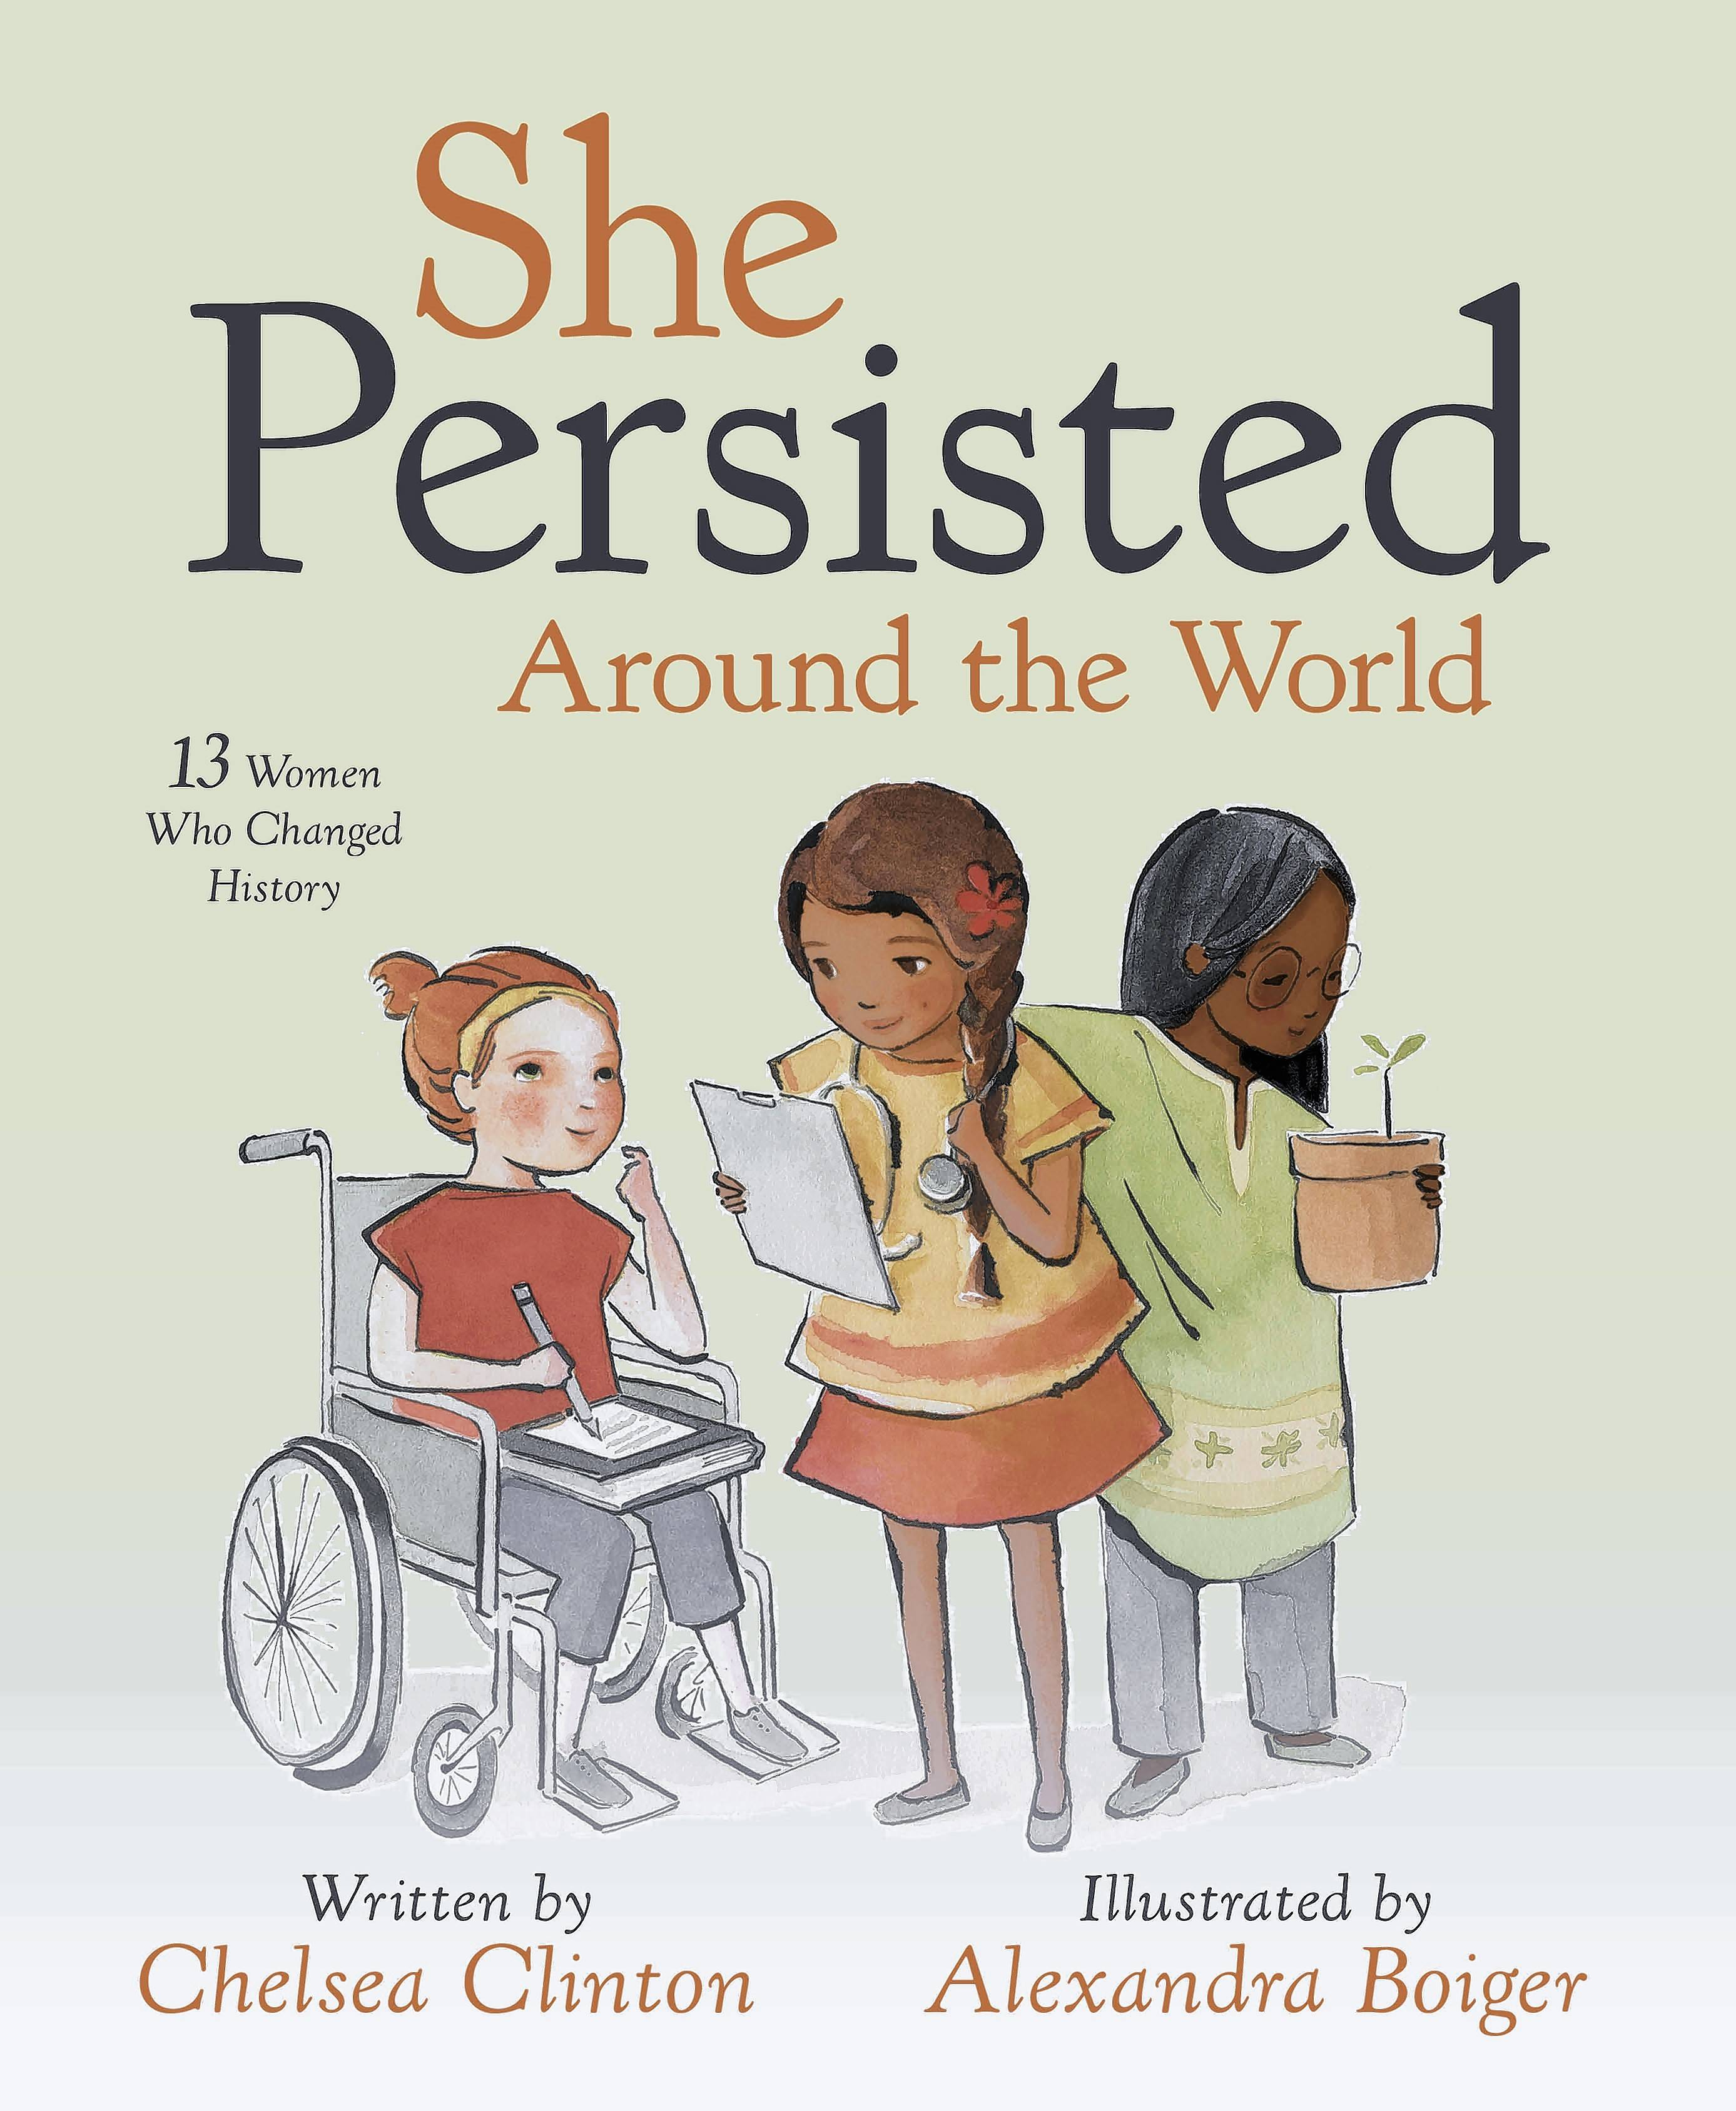 """She Persisted Around the World"" by Chelsea Clinton"